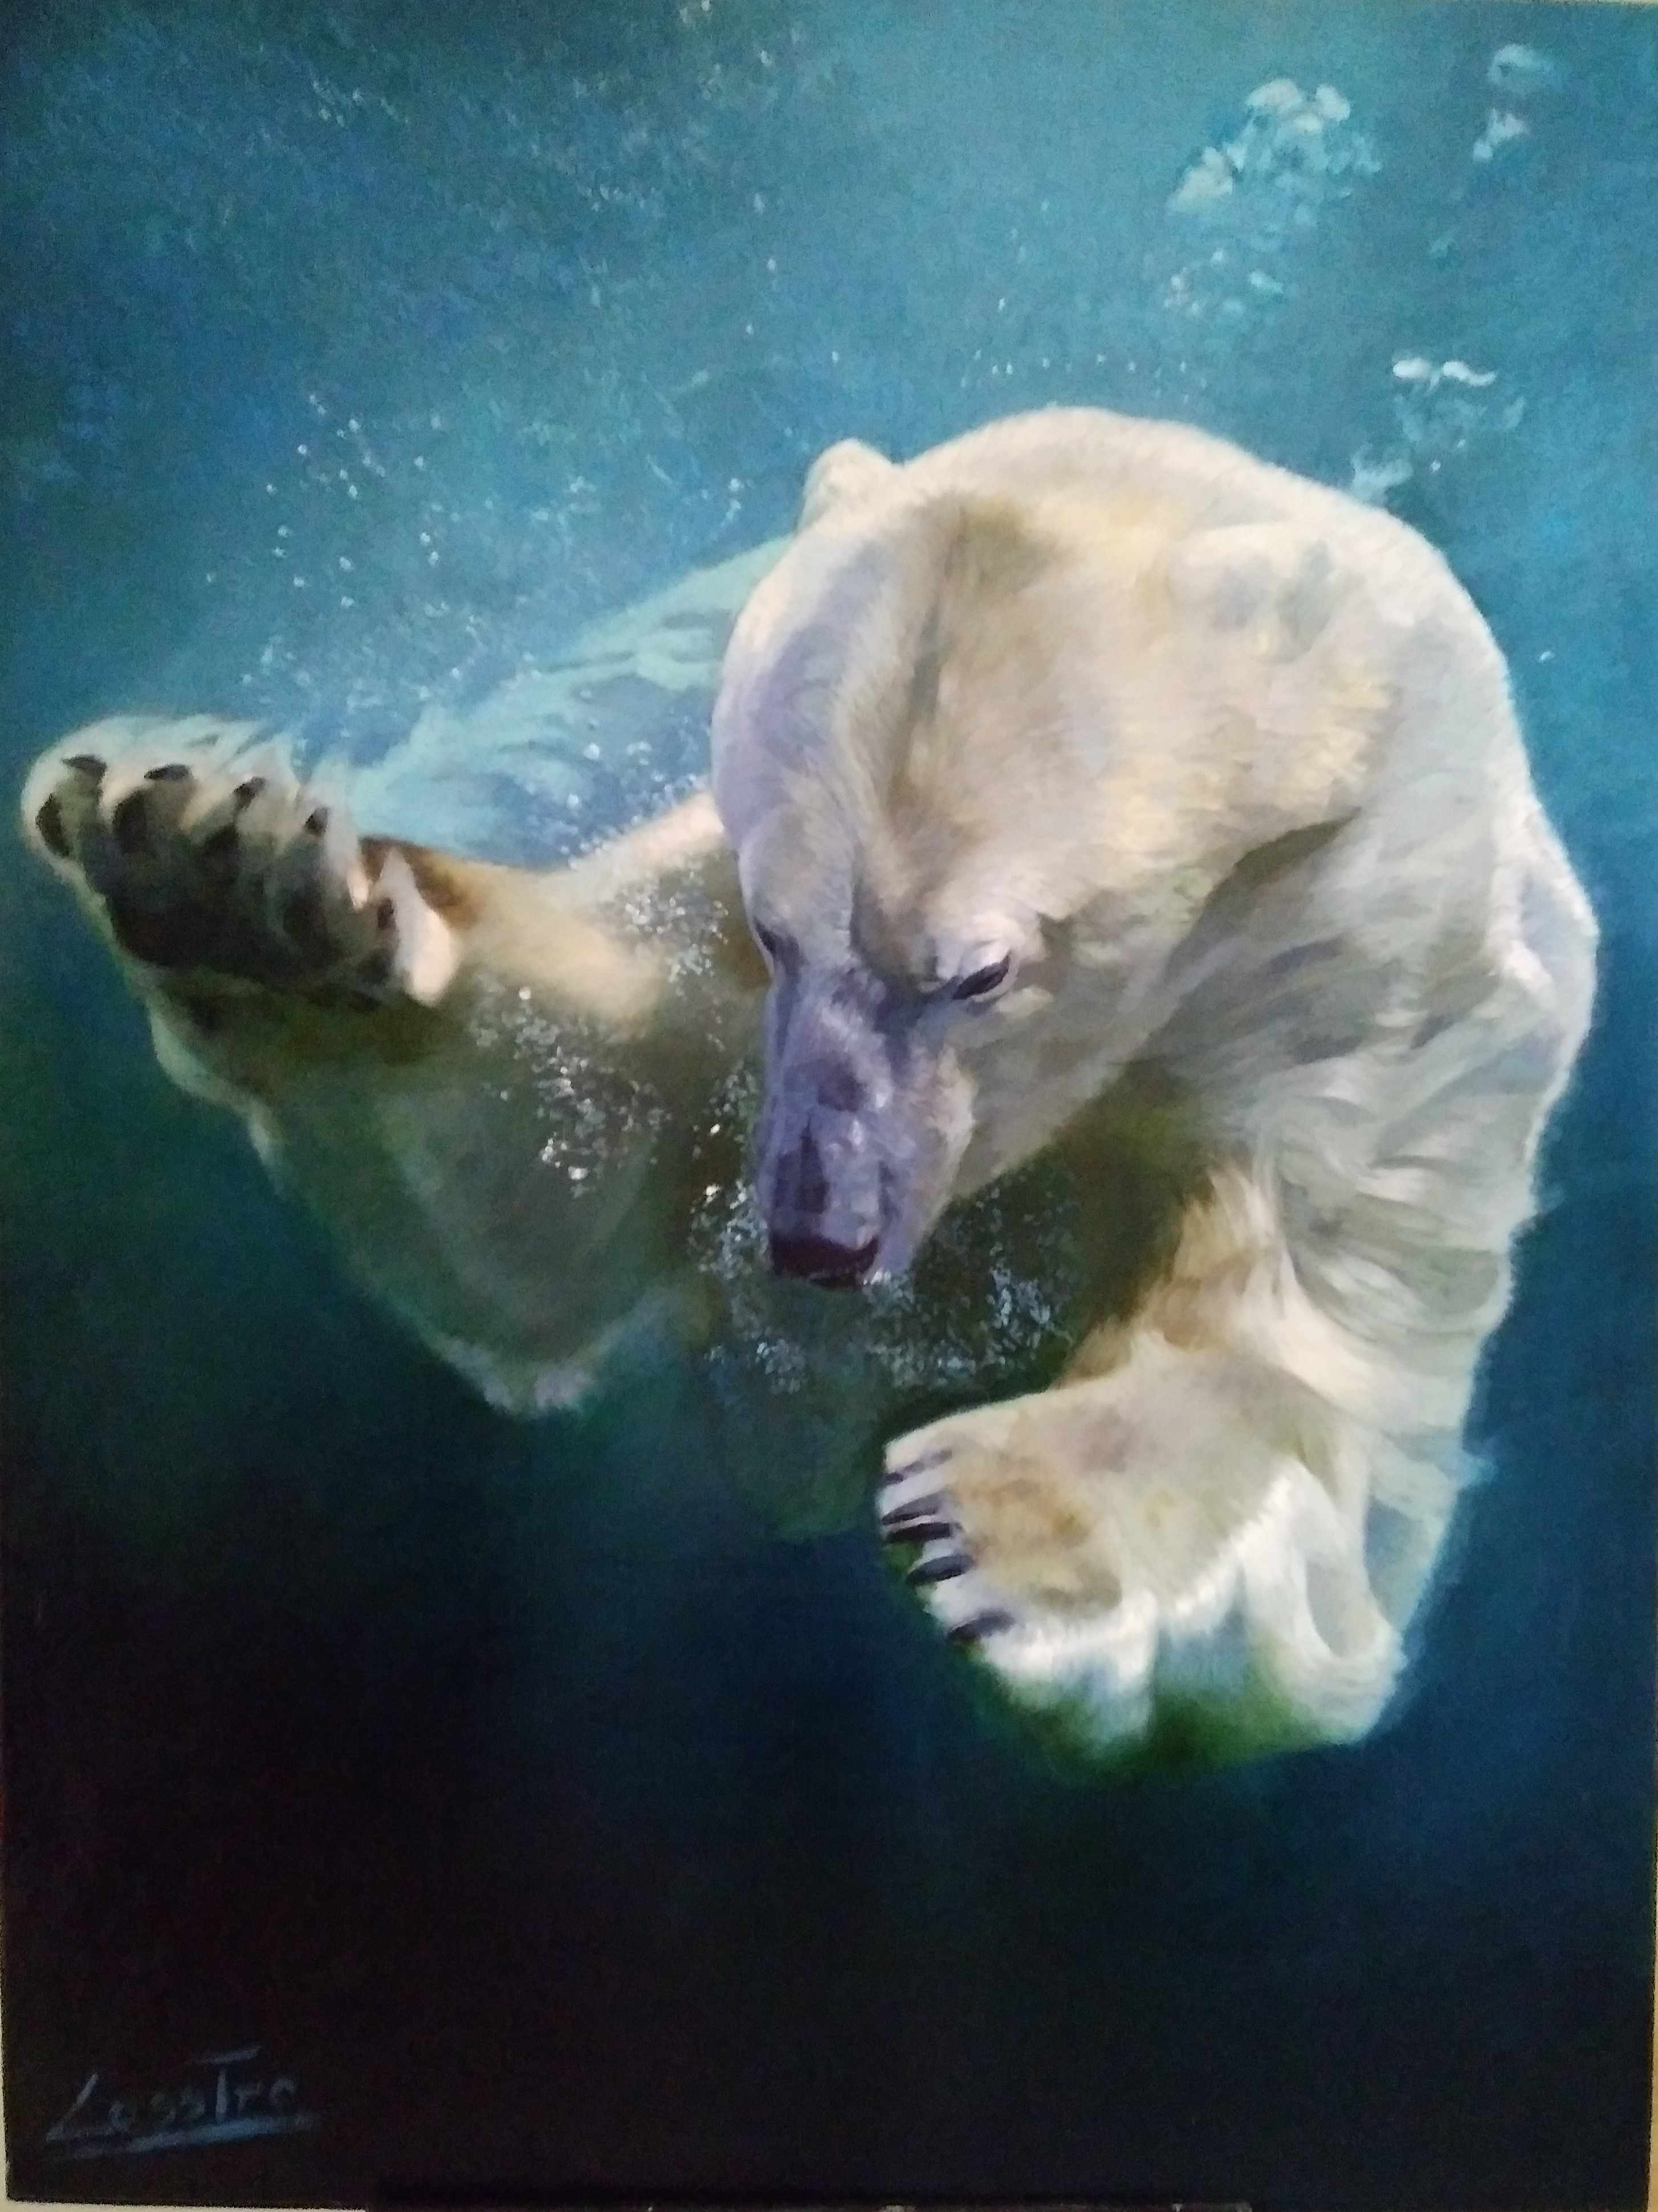 One of the finalists in the competition. Polar bear - Leszek Piotrowski